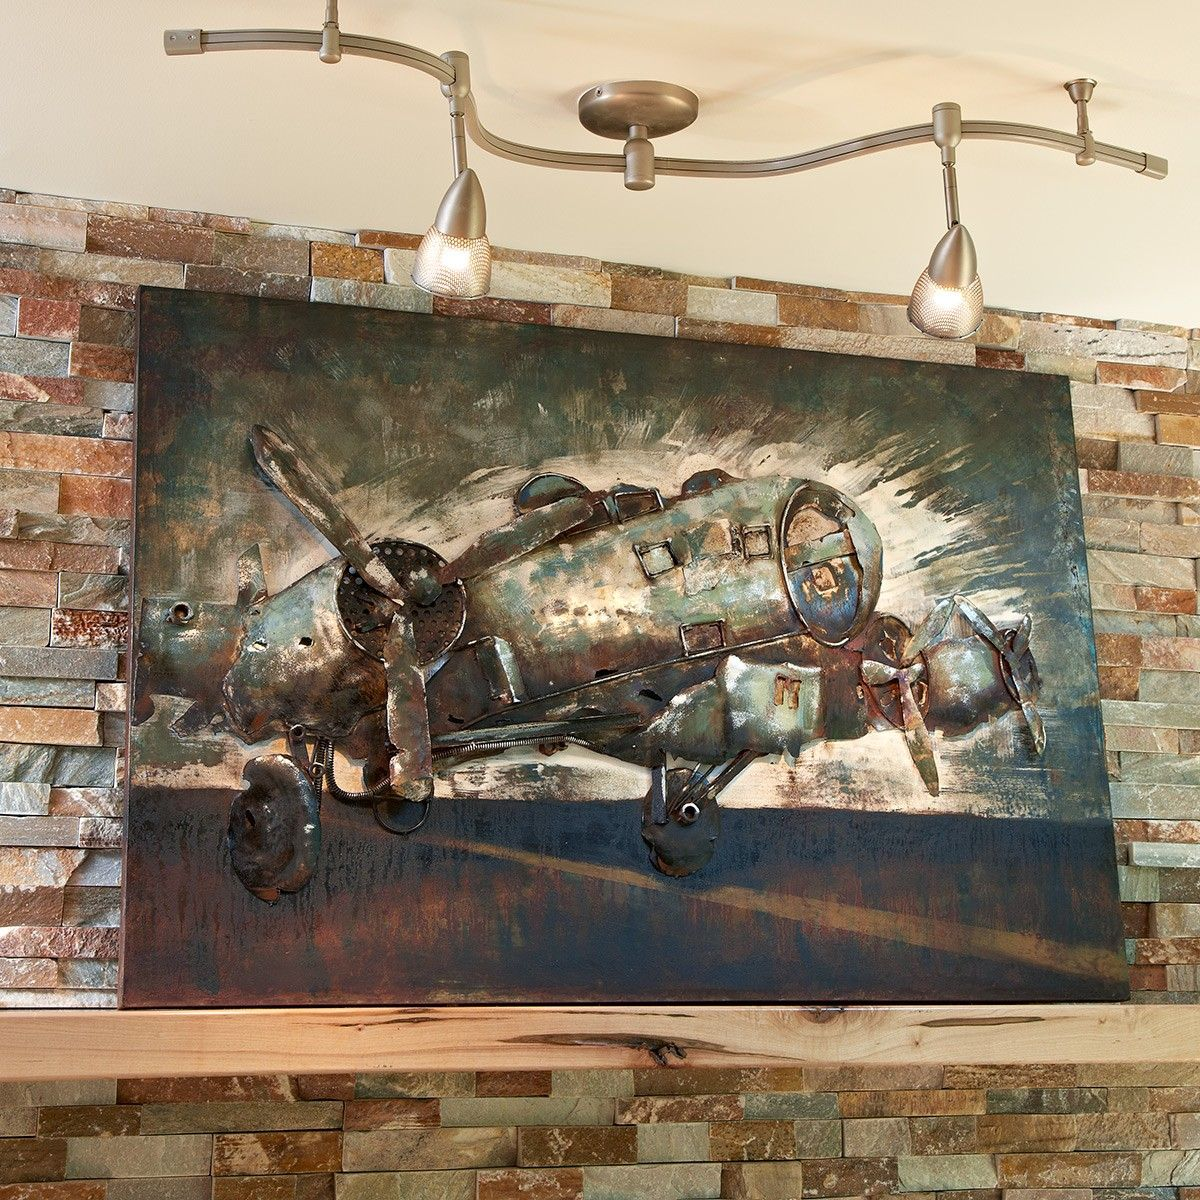 Metal B 17 Bomber Wall Decor With Images Aviation Decor